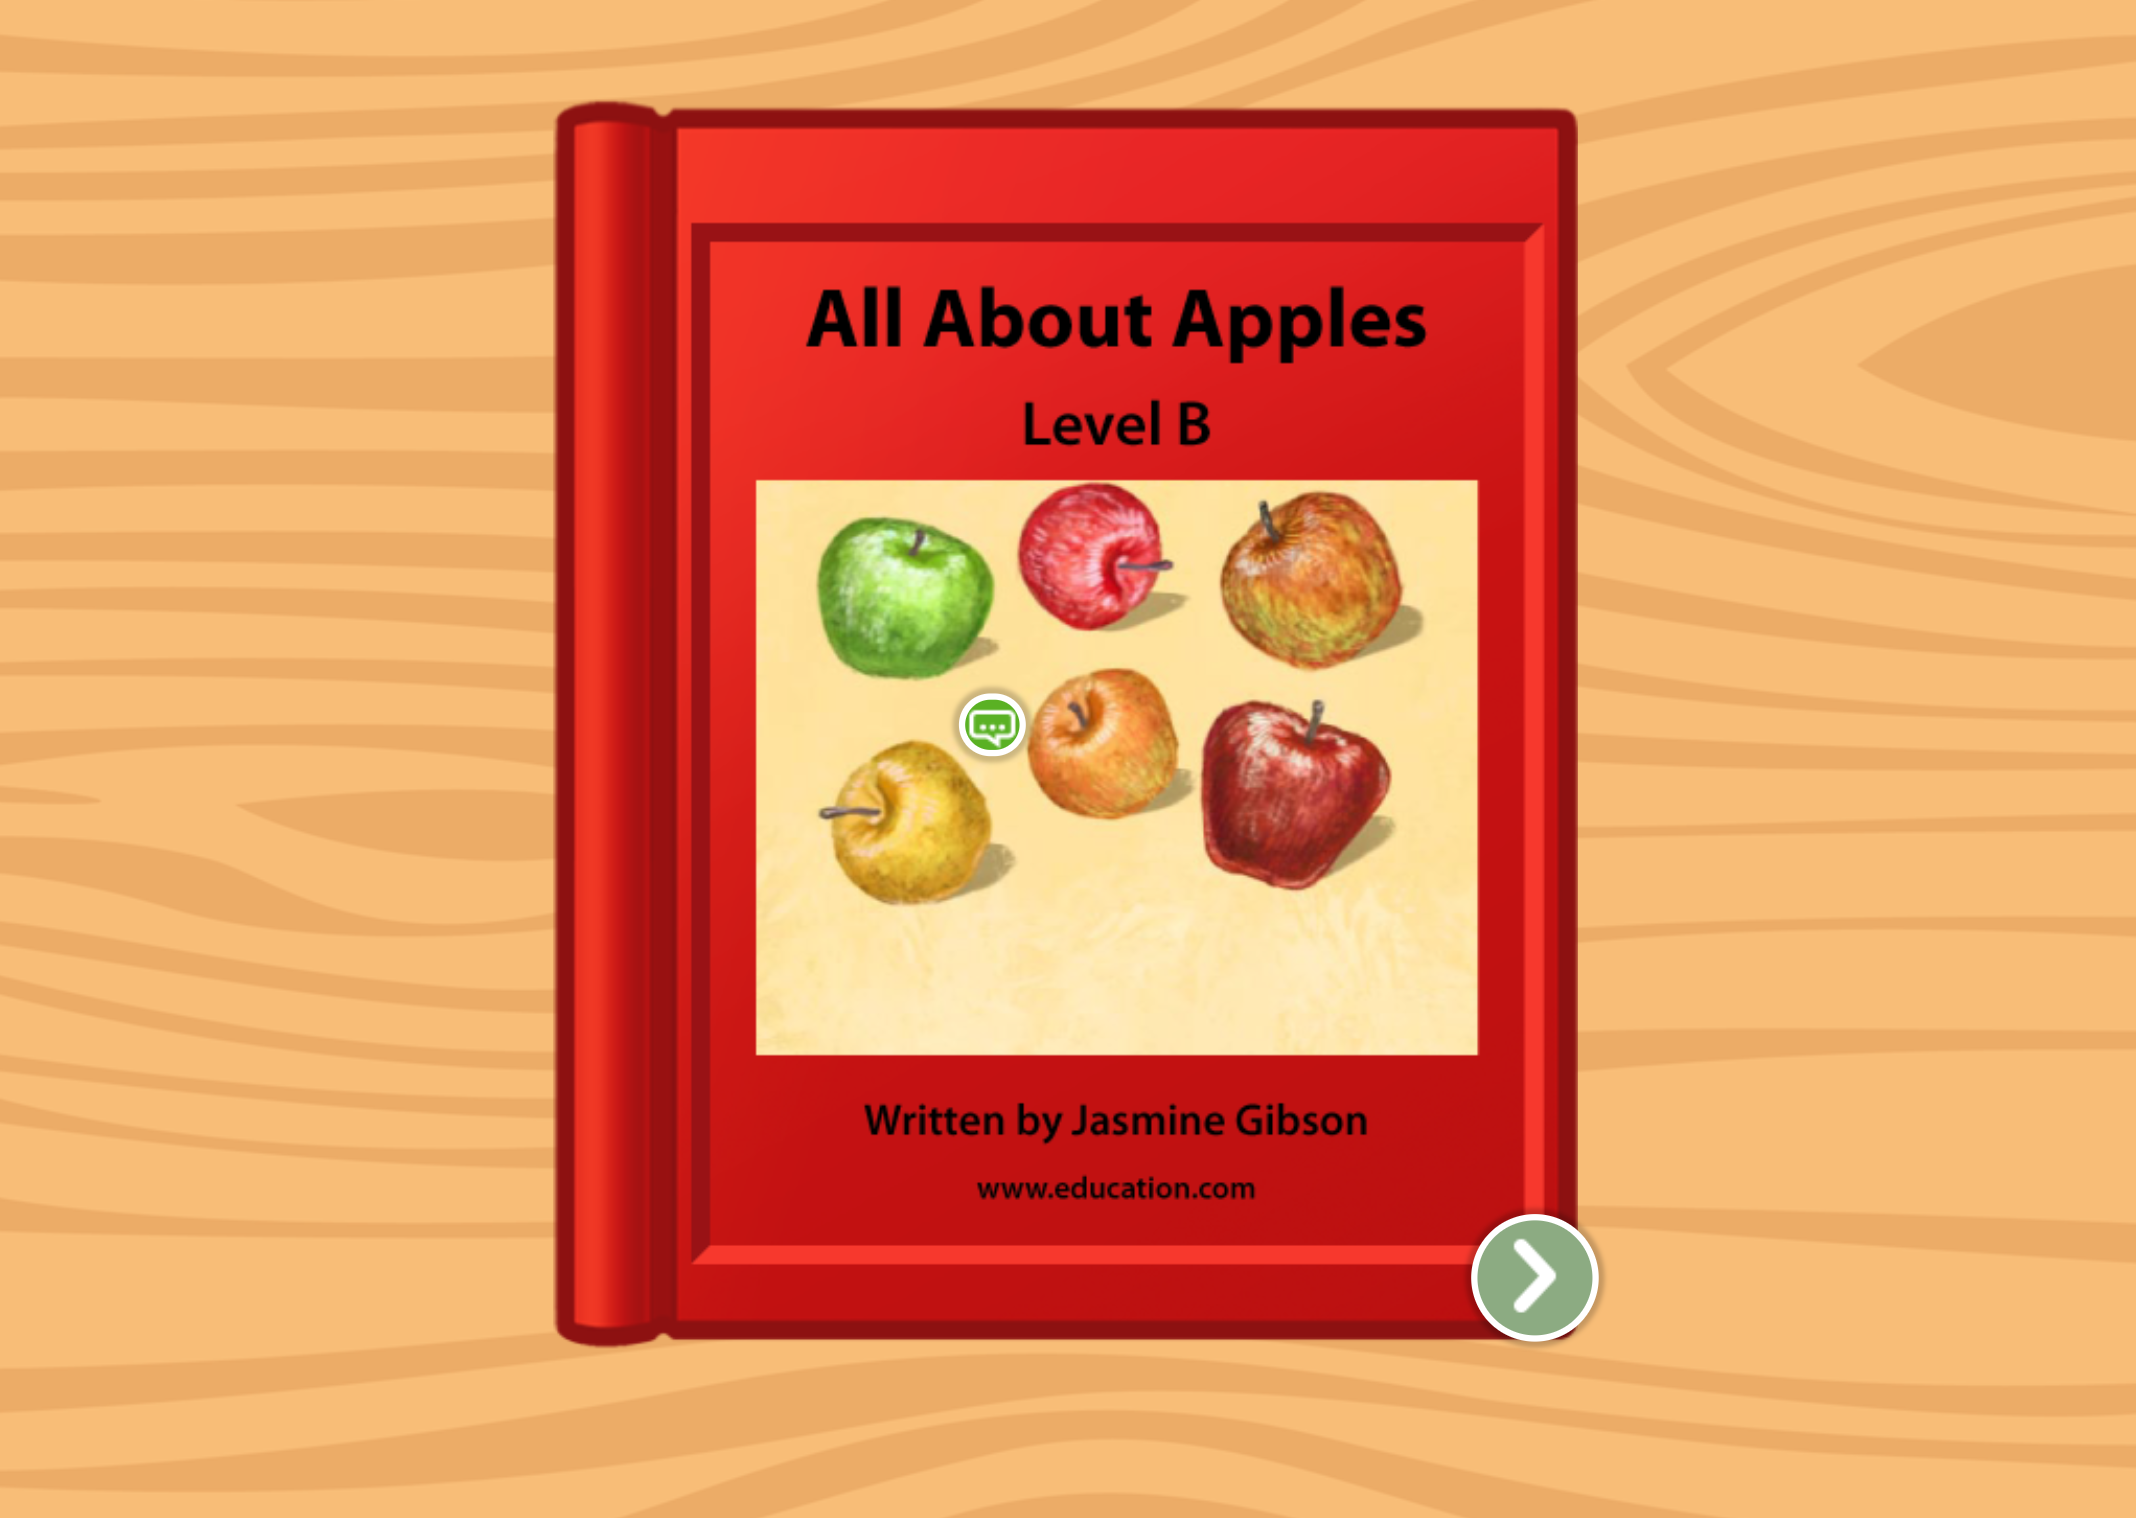 kindergarten Reading & Writing Stories: All About Apples: Level B